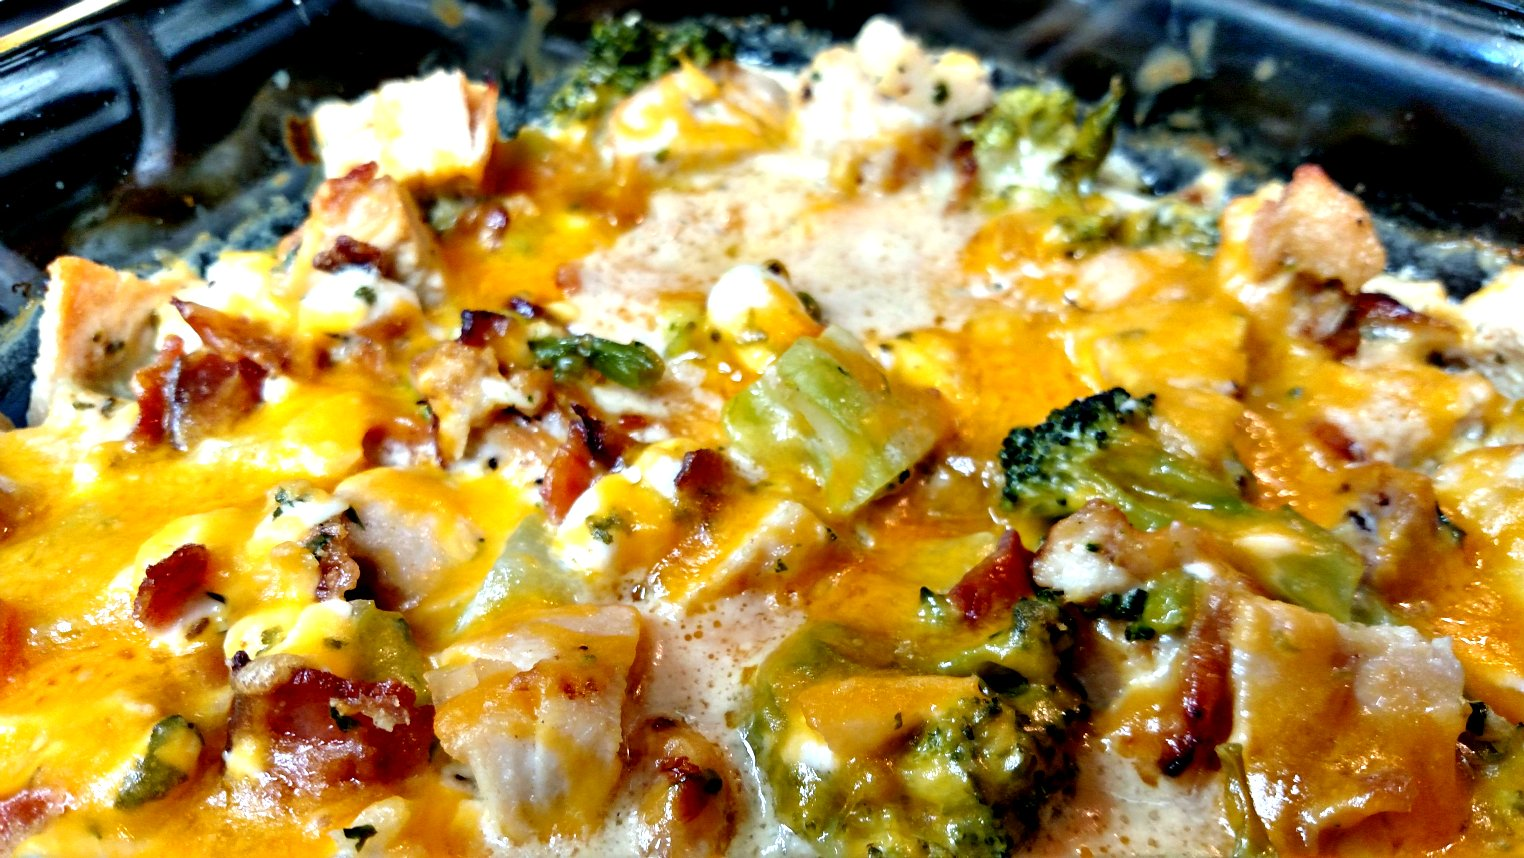 Low carb bacon ranch chicken casserole gf low carb bacon ranch chicken casserole forumfinder Images